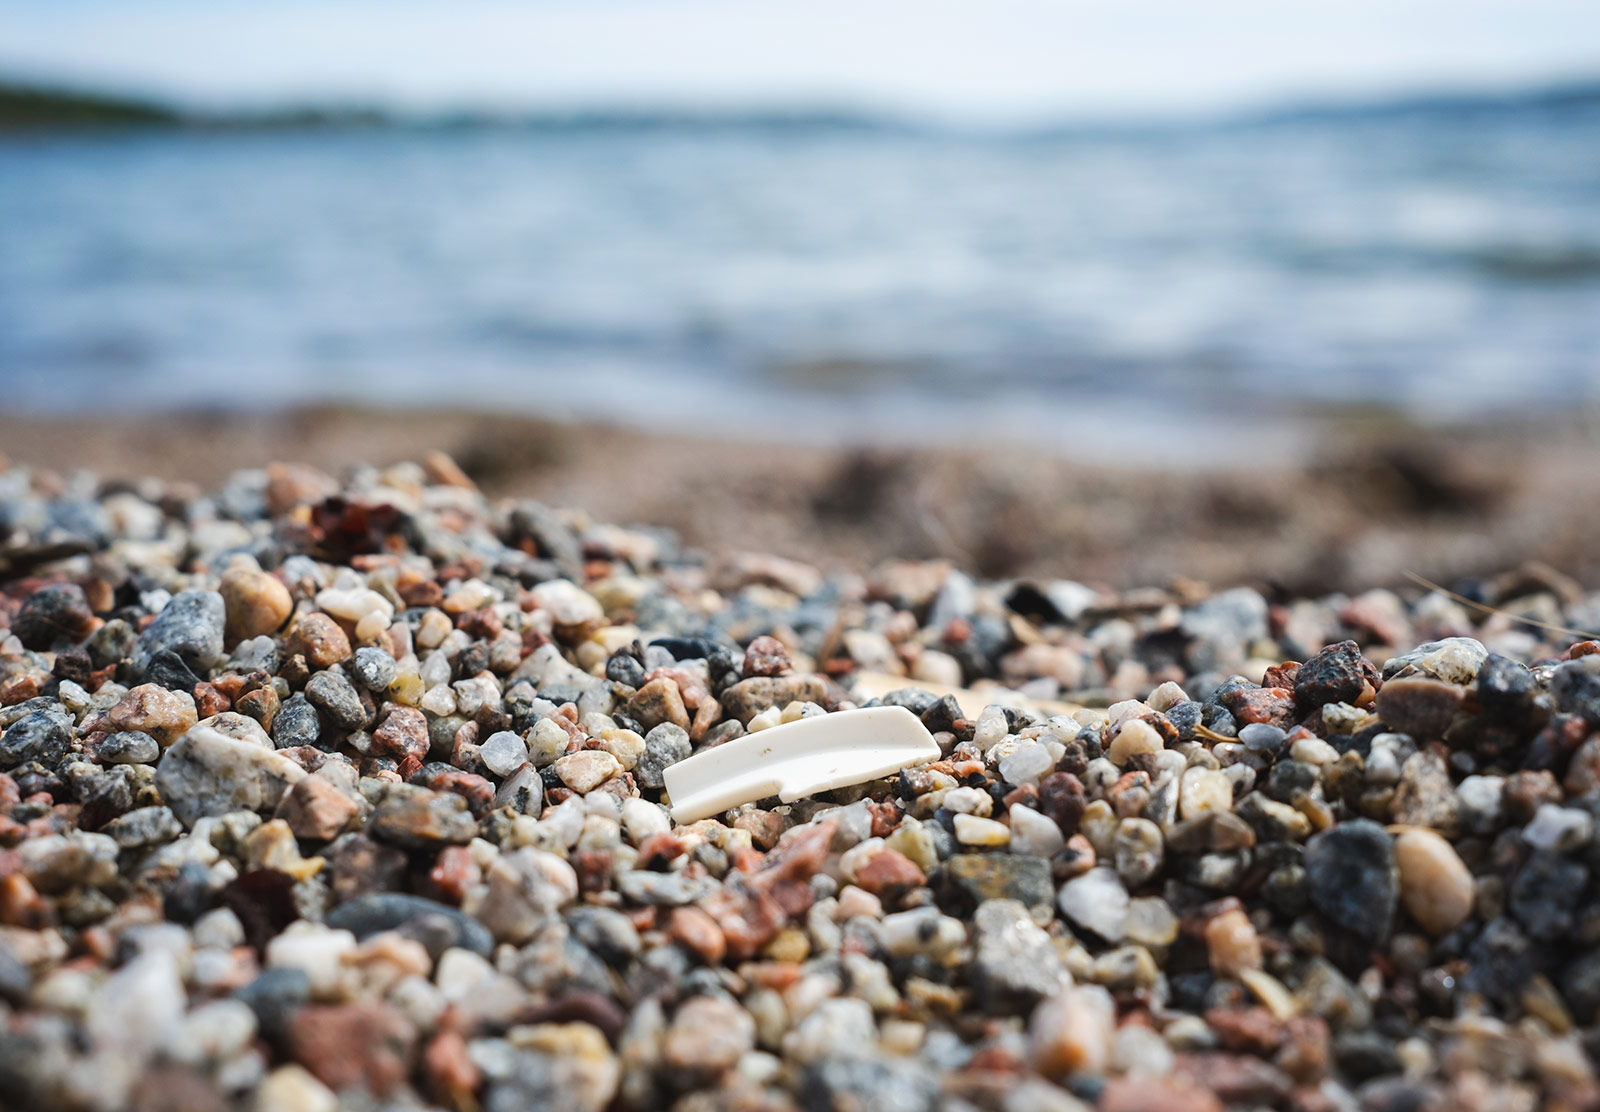 Piece of white plastic on sand